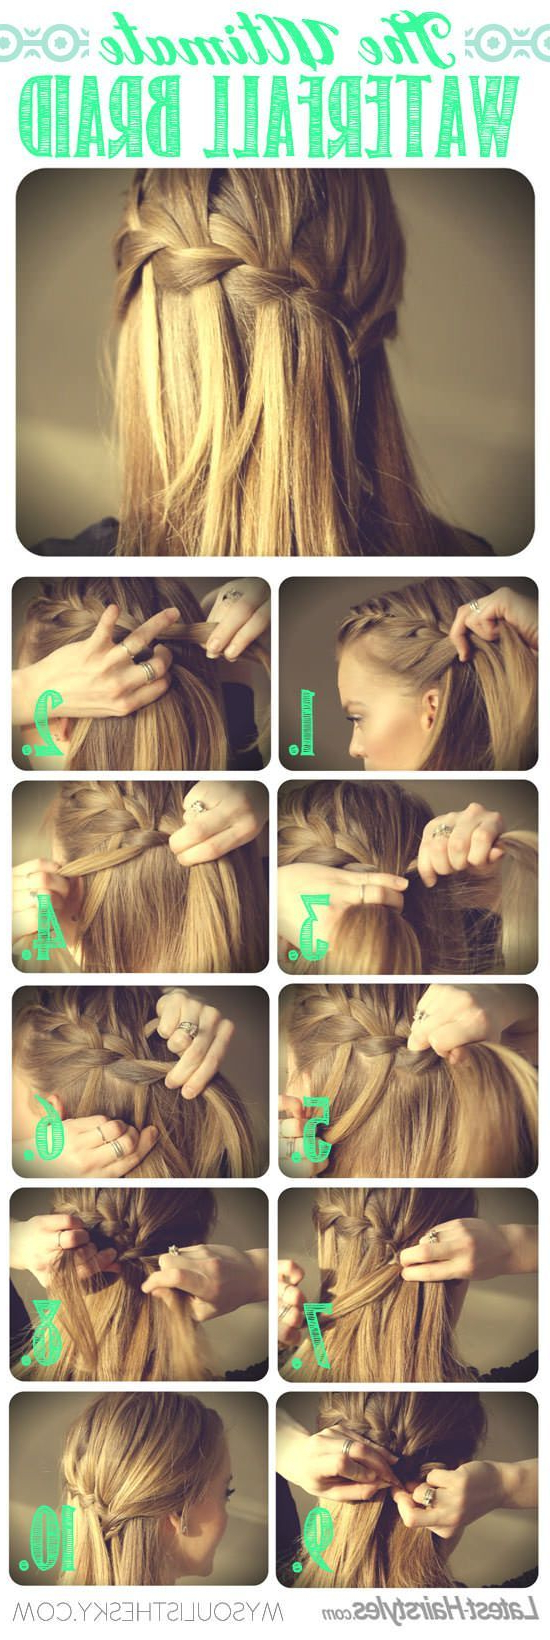 Amber Morris (19Kiara99) On Pinterest Throughout Most Popular Simplified Waterfall Braid Wedding Hairstyles (View 11 of 20)